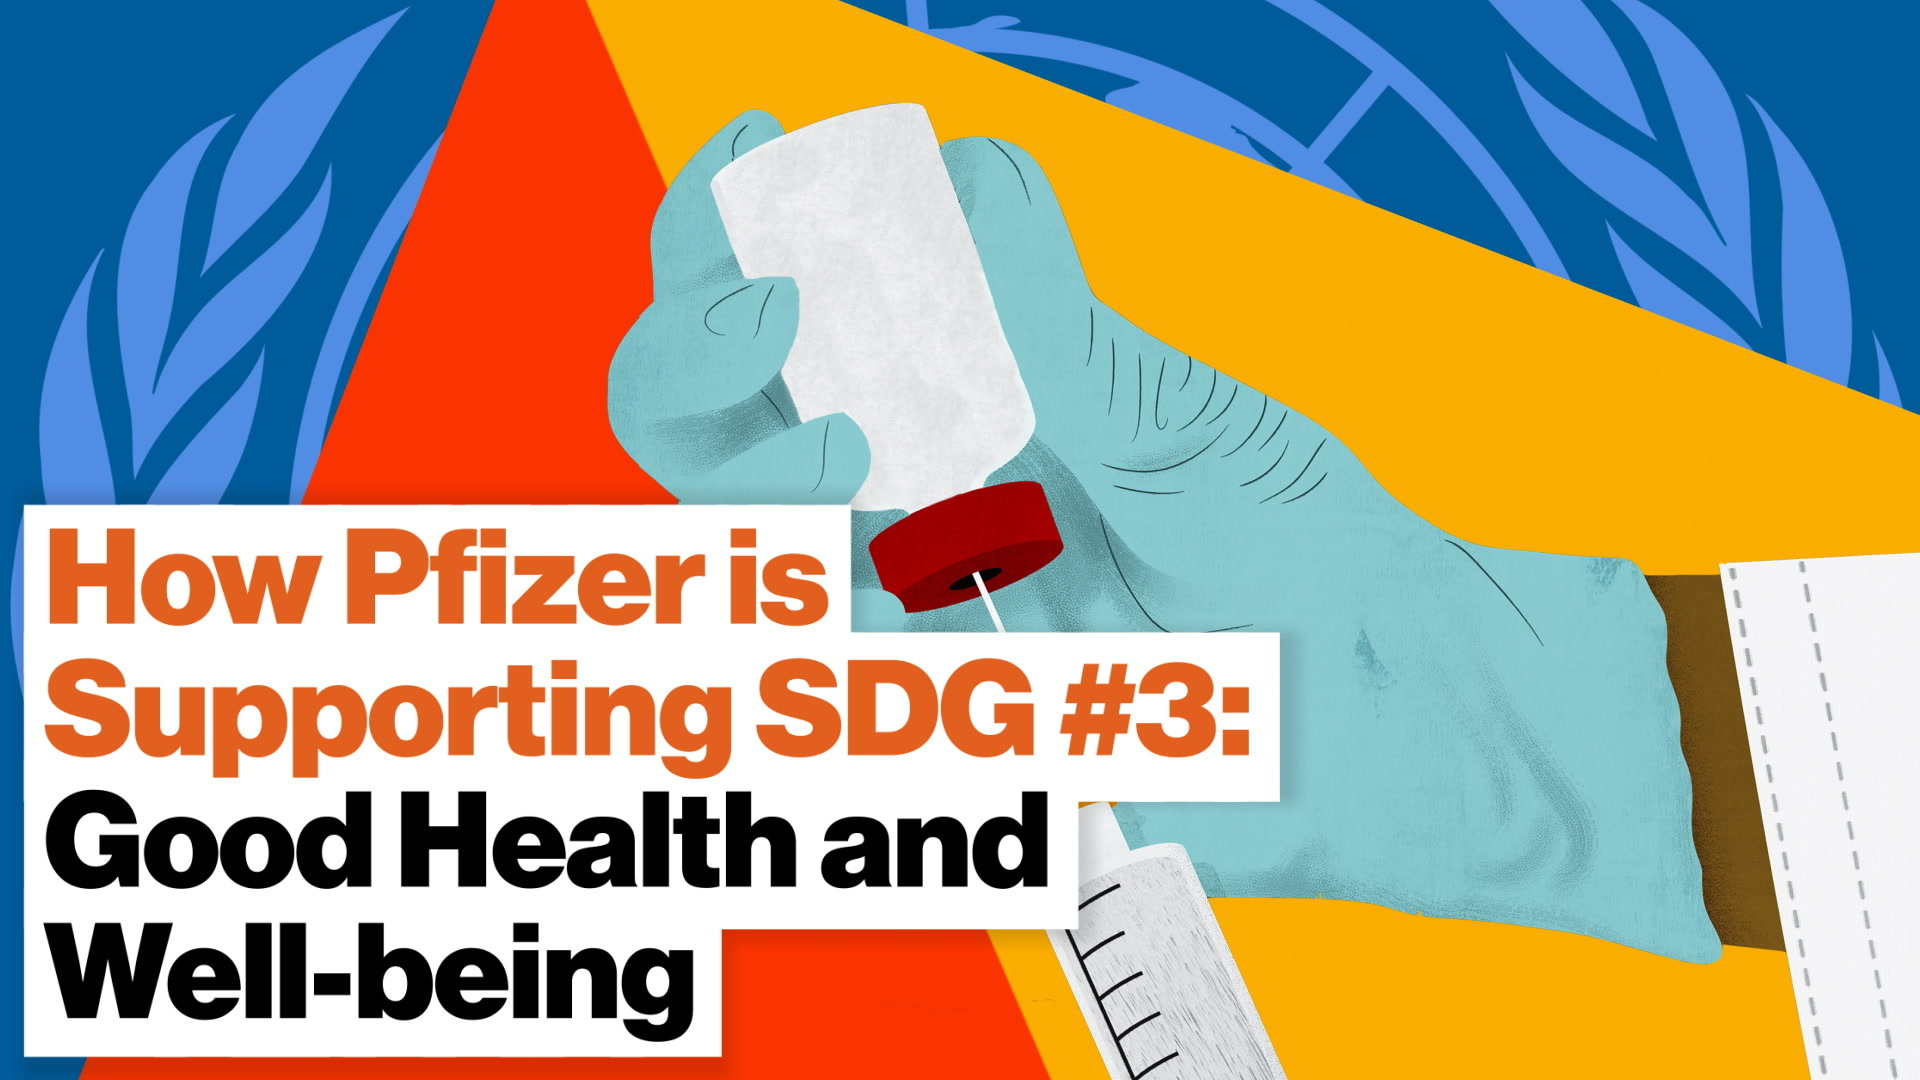 How Pfizer is supporting SDG #3: Good health and well-being